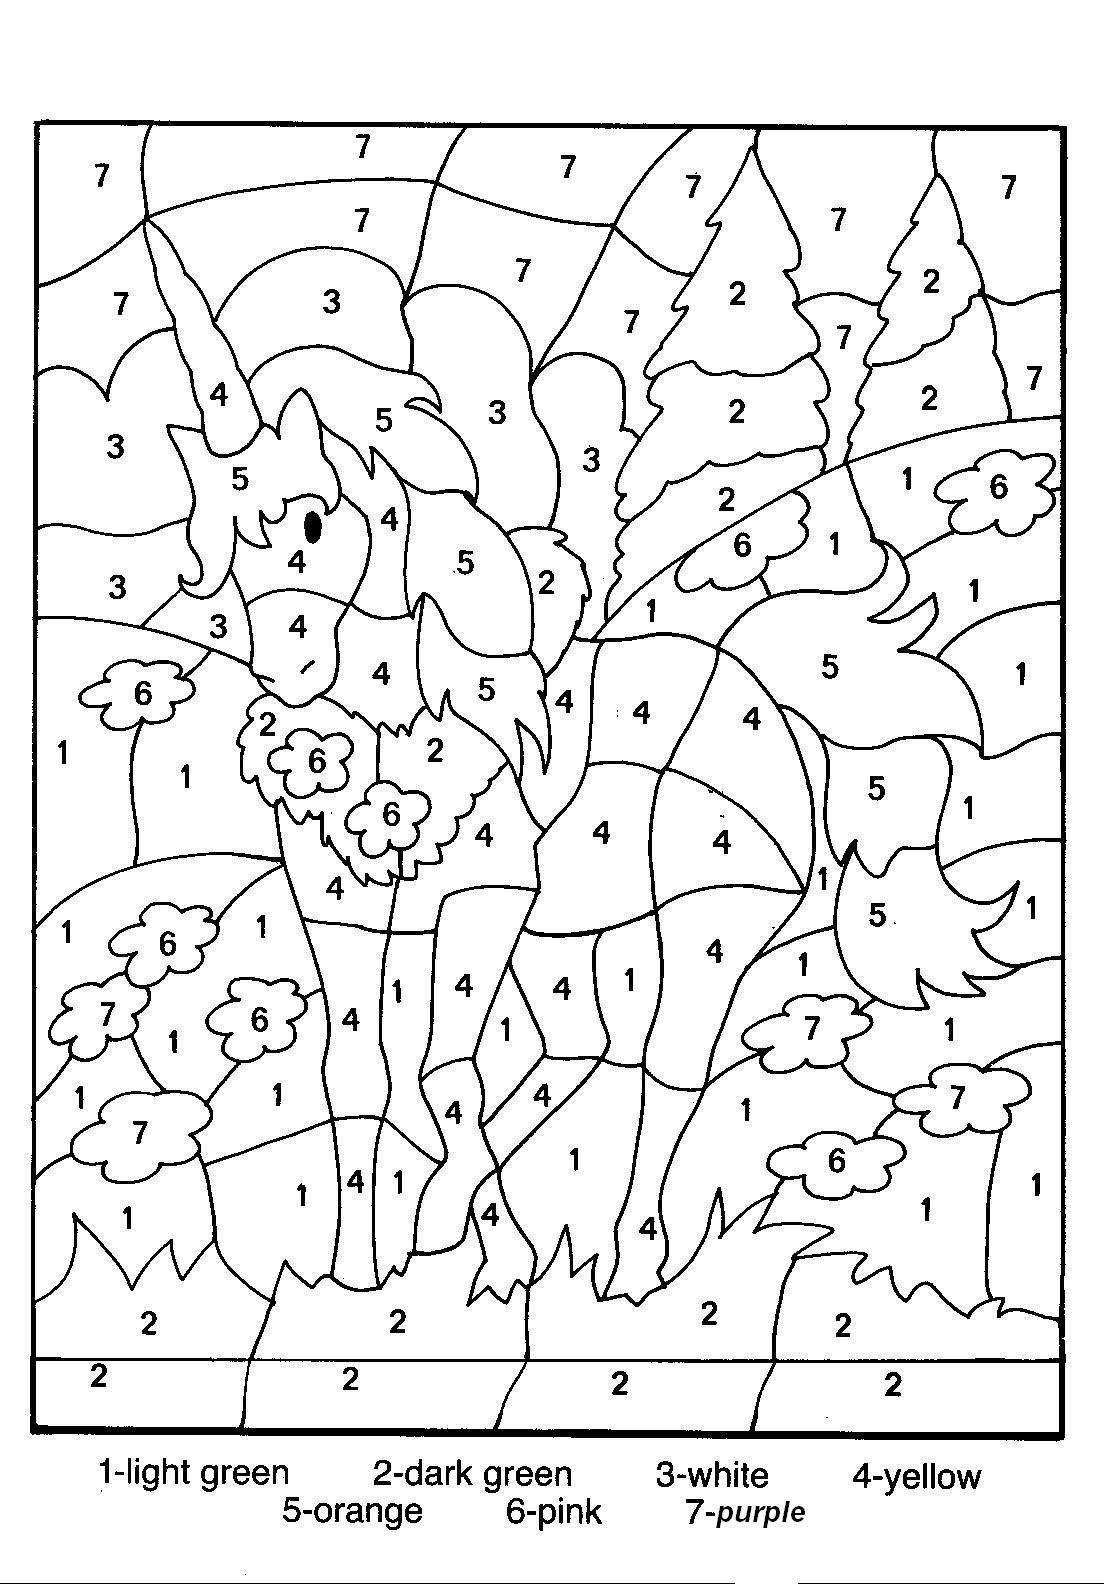 Grab Your New Coloring Pages Color By Number Download Https Gethighit Com New Coloring Pages Color By Number Download Check Unicorn Coloring Pages